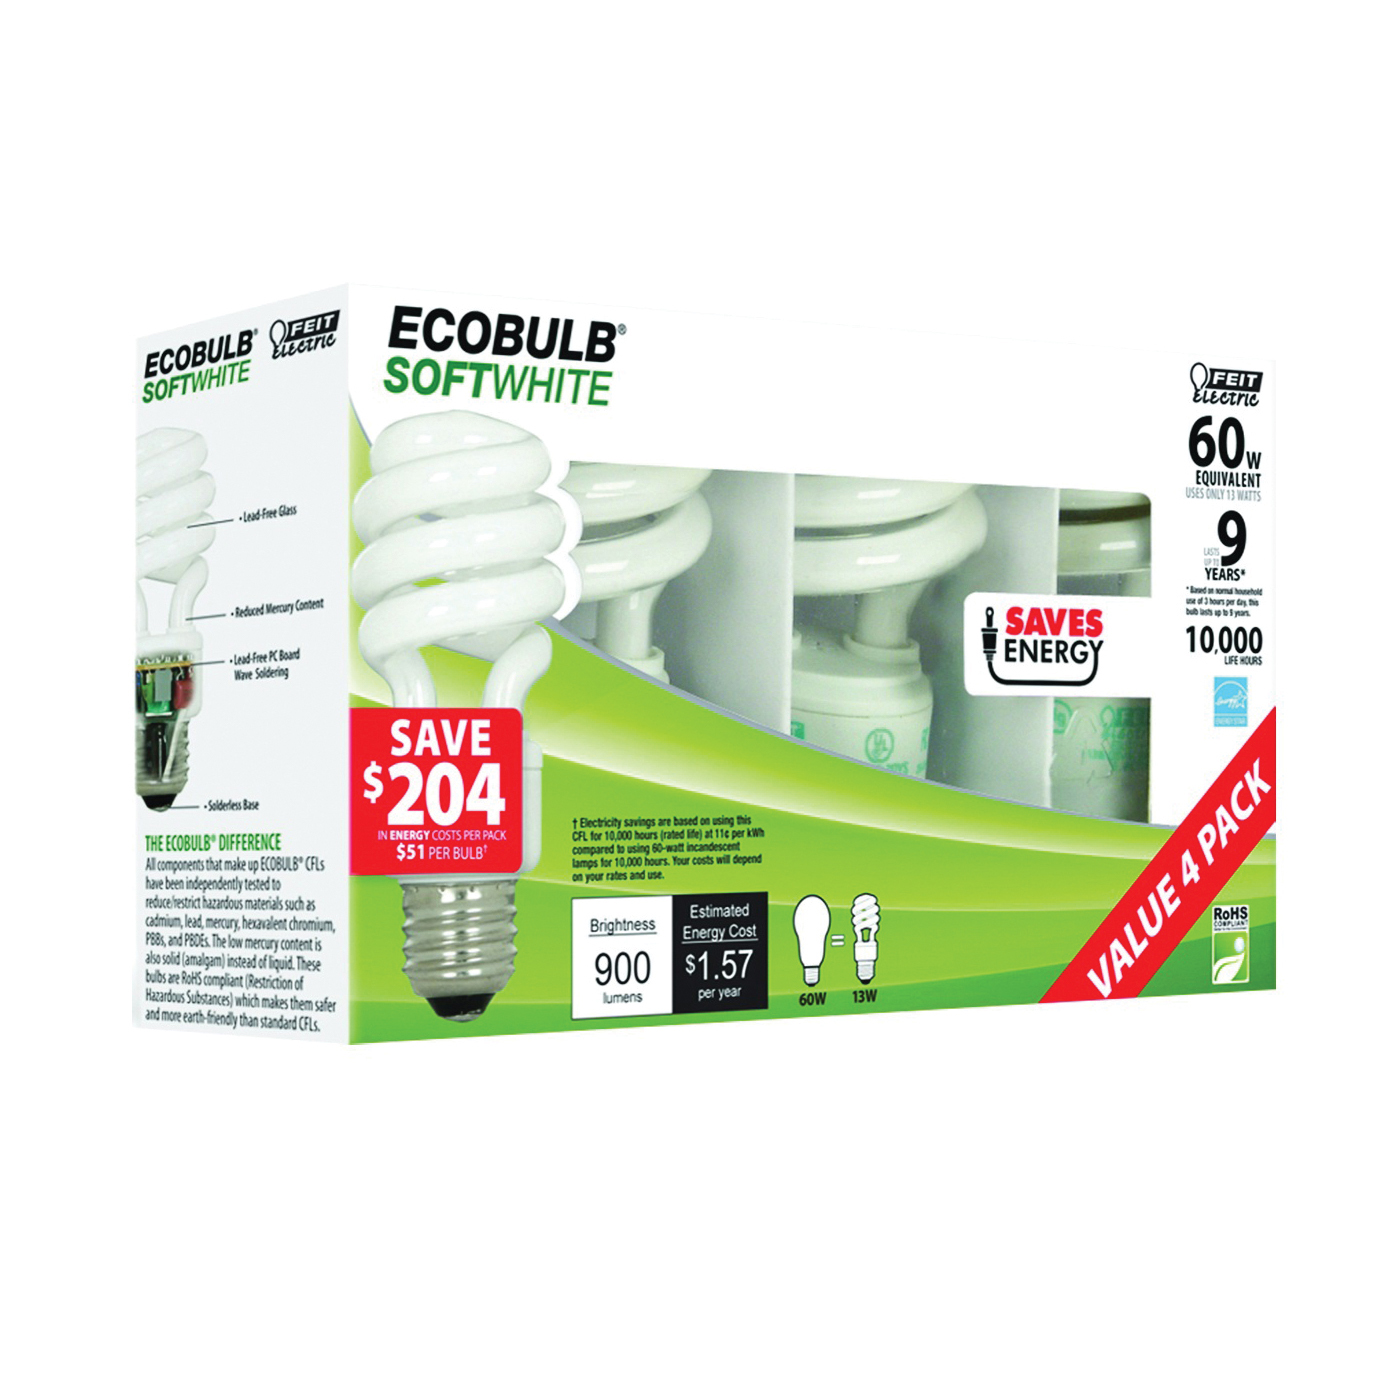 Picture of Feit Electric ESL13T/4 Compact Fluorescent Bulb, 13 W, Spiral Lamp, Medium E26 Lamp Base, 900 Lumens